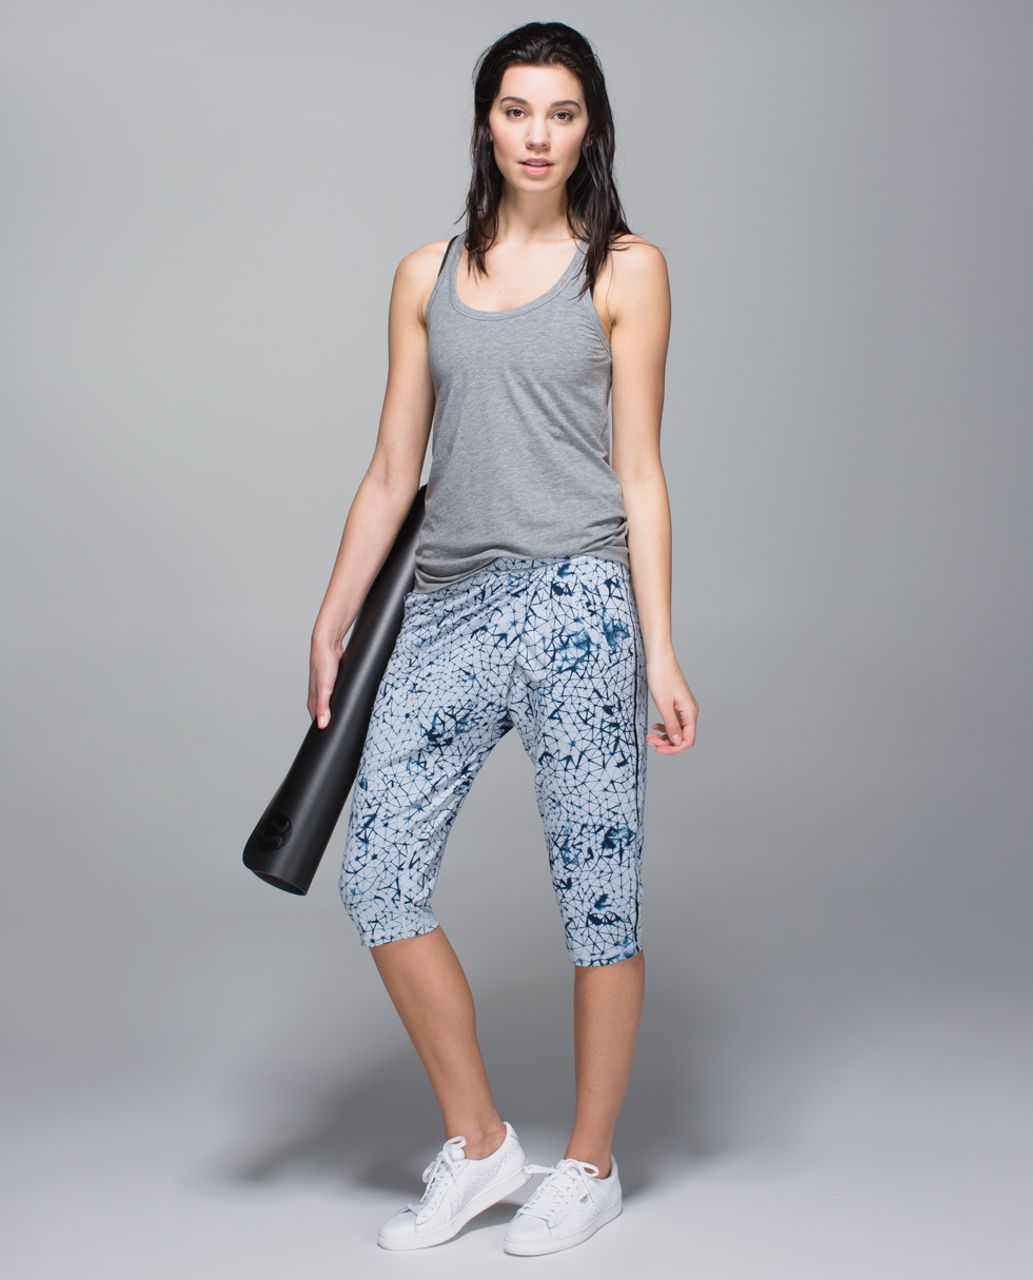 Lululemon Retreat Yogi Crop - Star Crushed Silver Fox Deep Navy